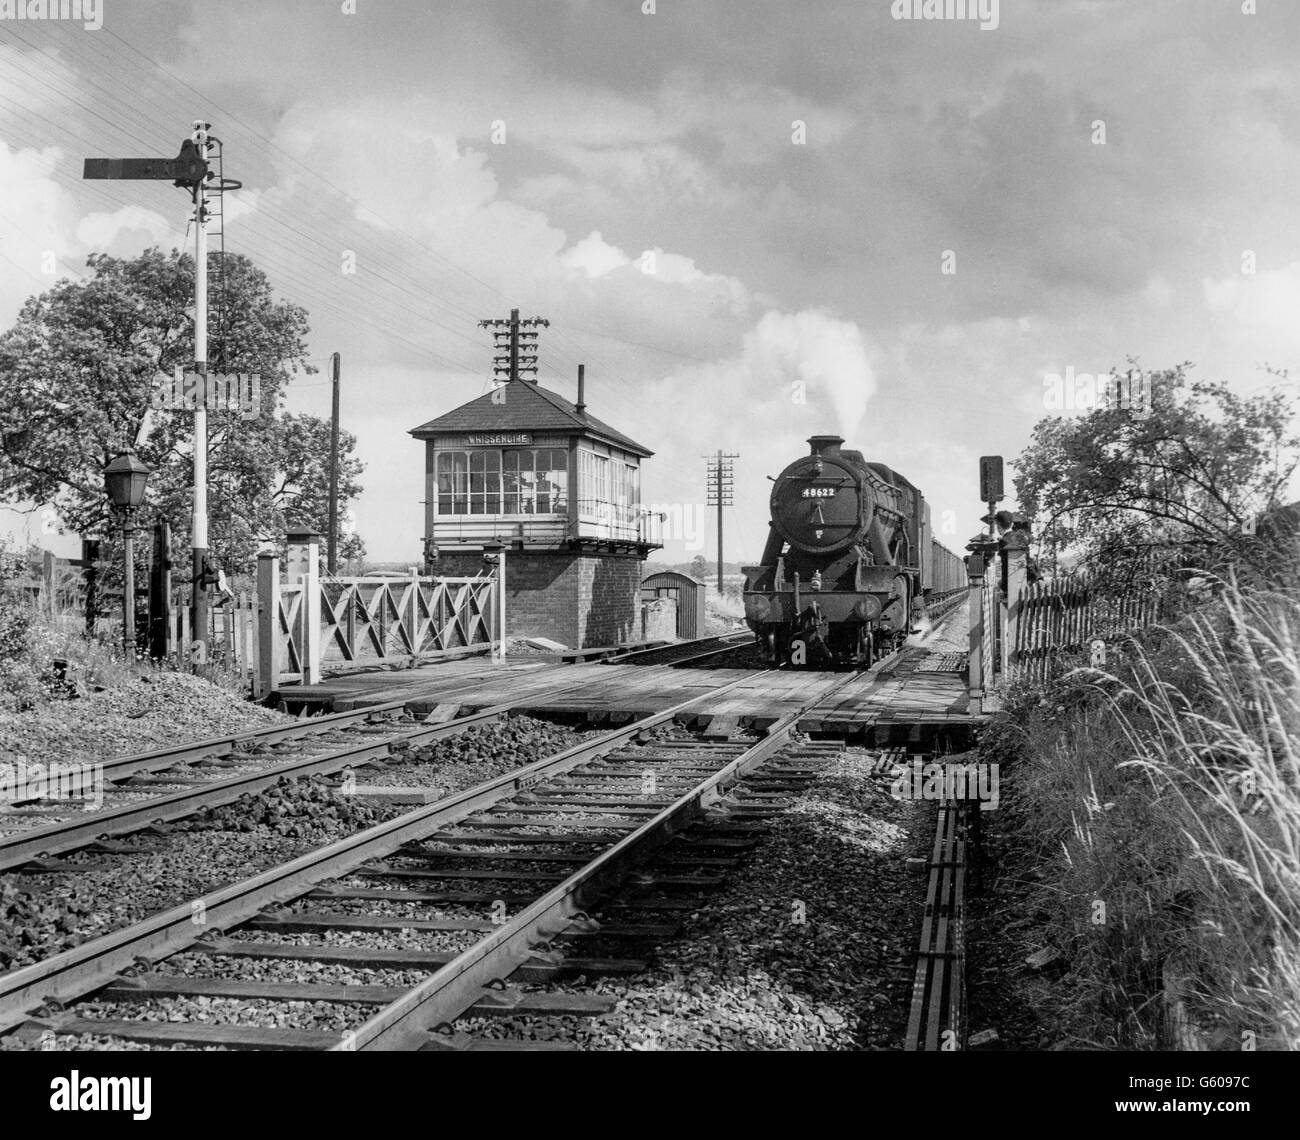 The location is Whissendine  between Melton Mowbray and Oakham on the Leicester to Peterborough line. Stock Photo